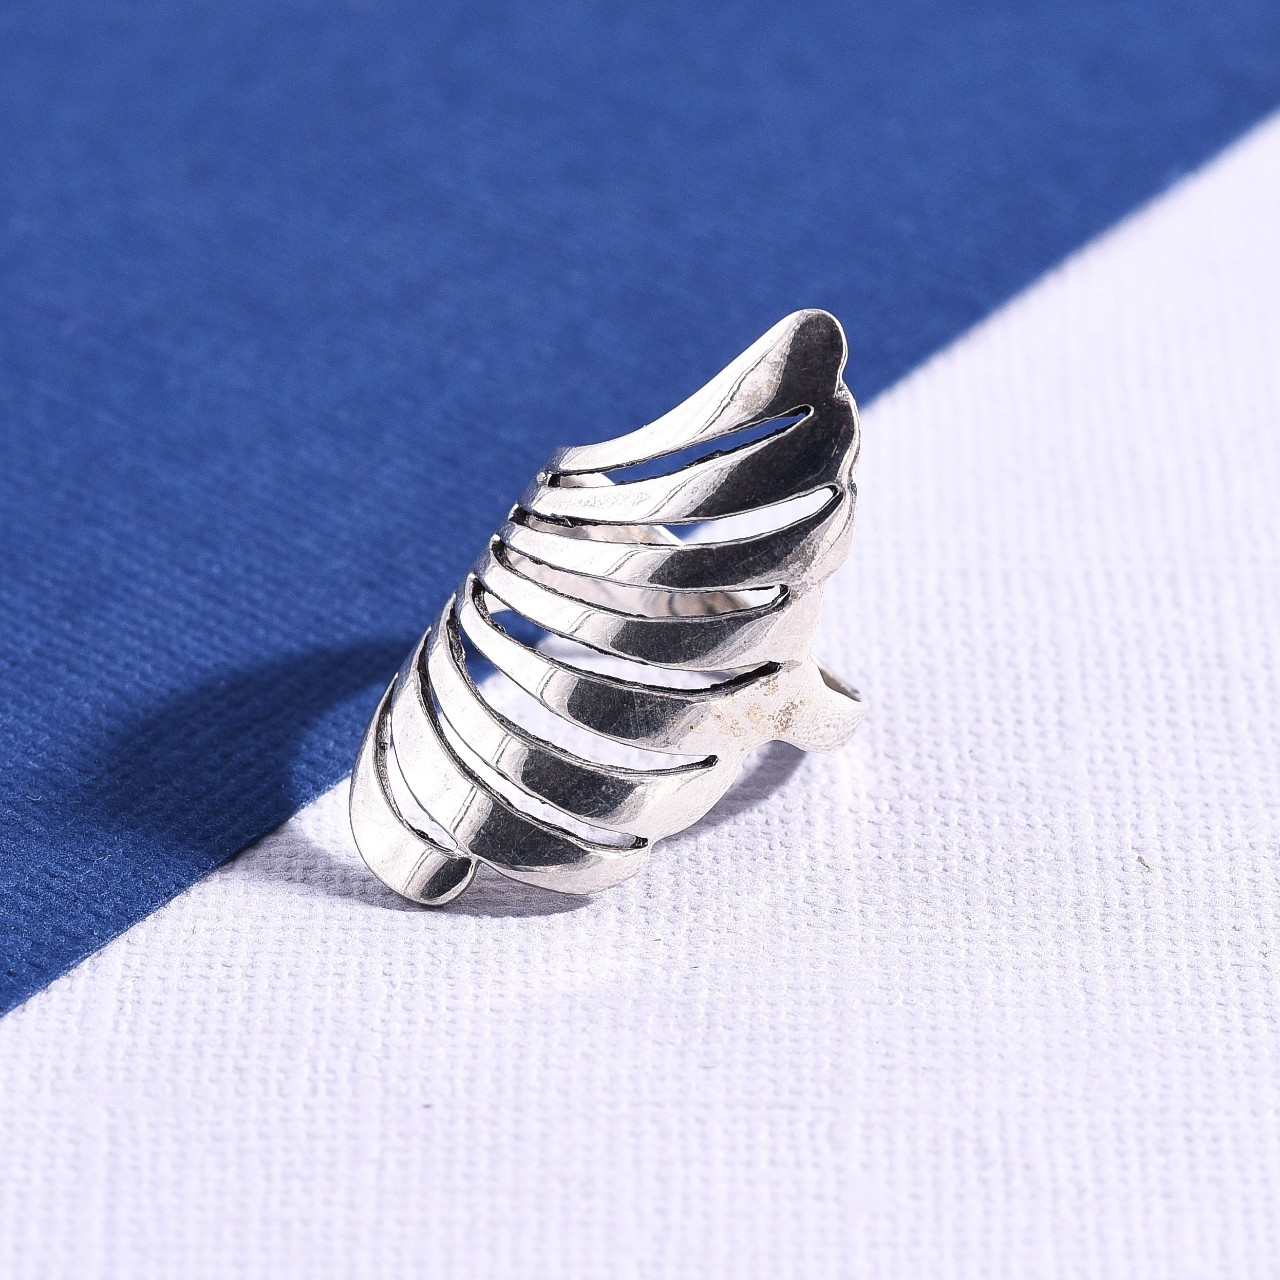 Product Image 1 - Sterling Silver Ring  Size 7  Will ship